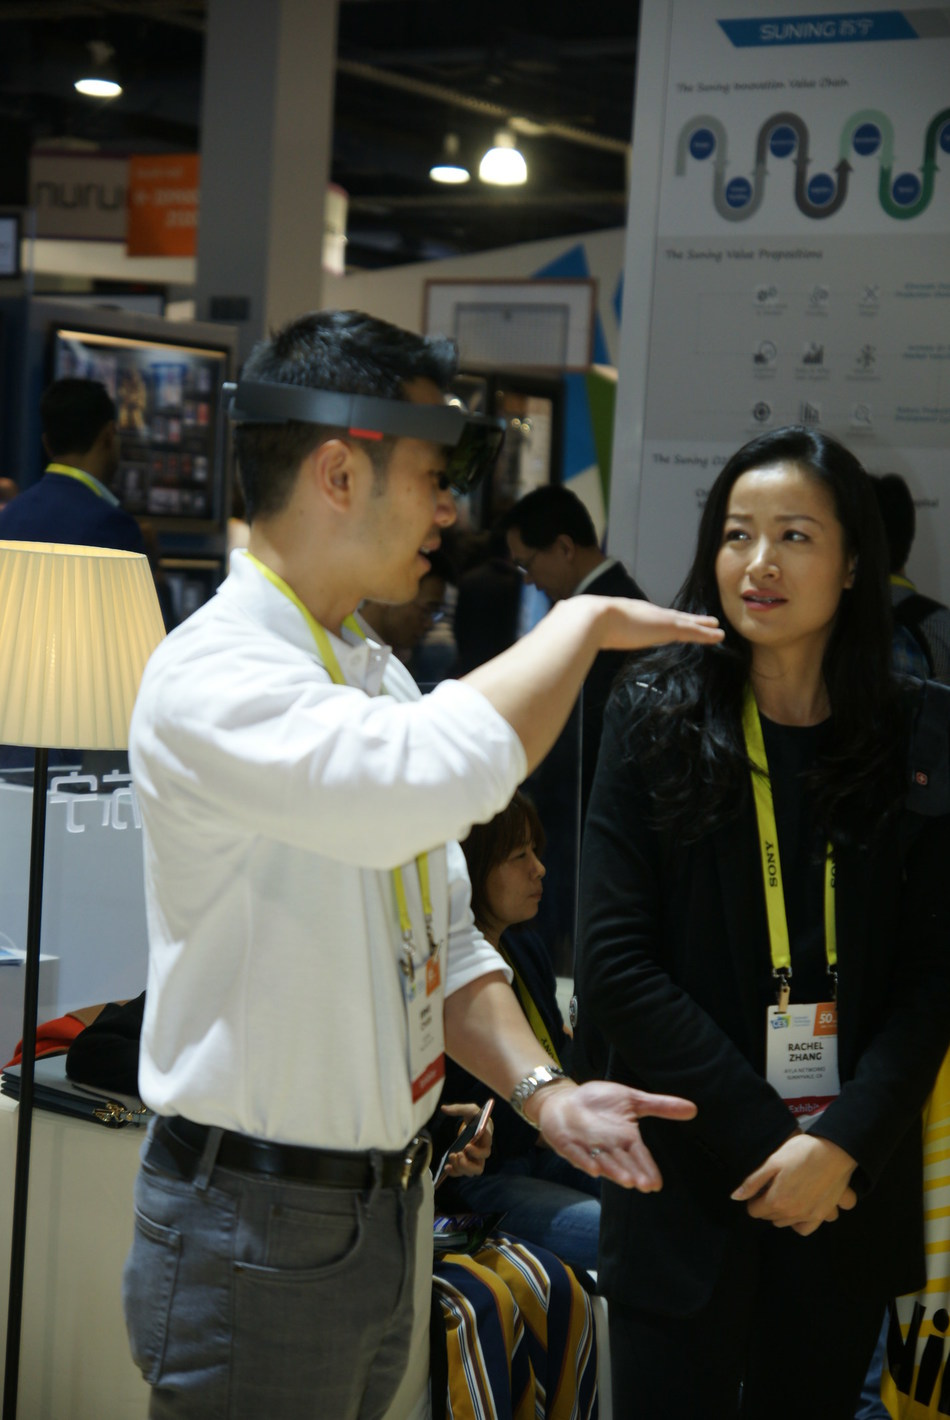 Suning Silicon Valley R&D Center researcher is introducing AR shopping to visitors